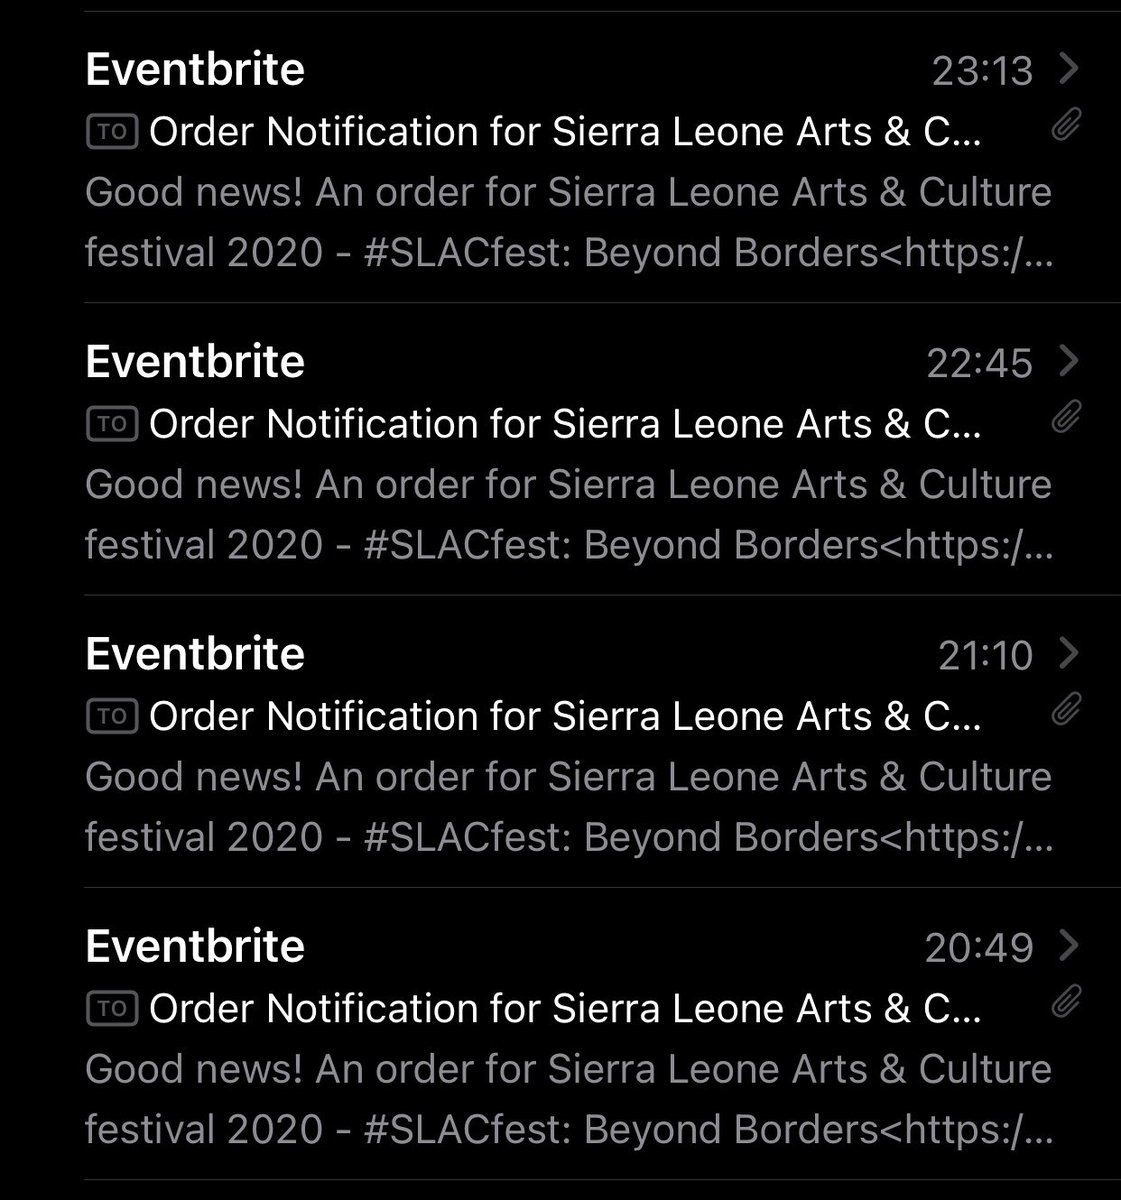 So... the @Young_Salone KUSHƐ newsletter actually works 😲  Sent a last minute reminder about #SLACfest last night and woke up this morning to multiple Eventbrite notifications with names I recognise from our newsletter subscribers 👏🏾  Kam Jɔyn wi! 🎫   https://t.co/hn4djx6xEx https://t.co/KEBuhYqT6m